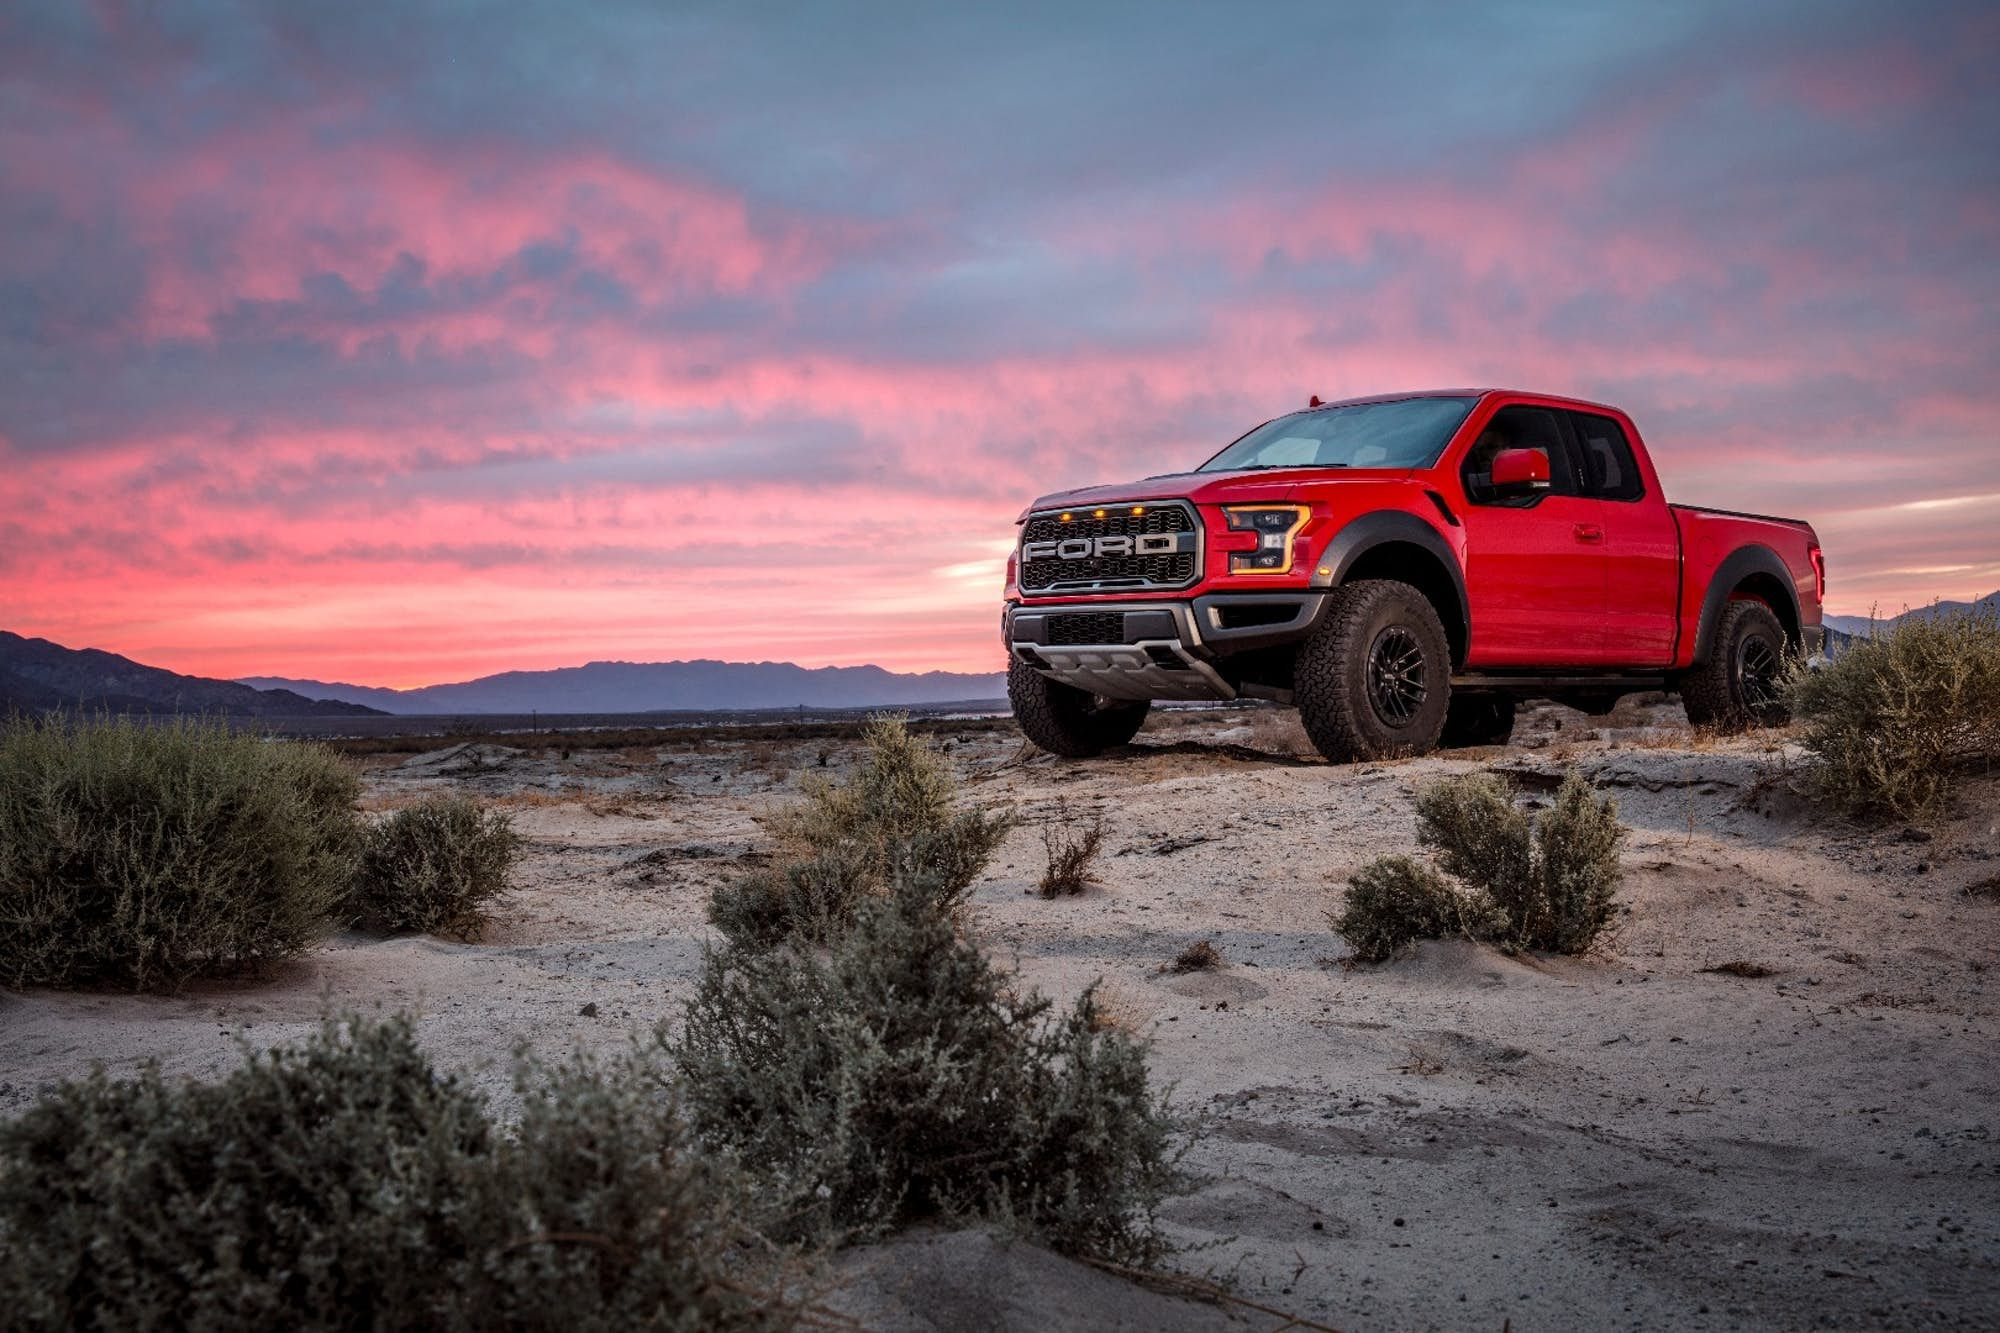 Ford Teamed Up With Performance Racing Outfit Fox To Give The Raptor S Suspension An Electronic Makeover Ford Raptor Ford Velociraptor Pickup Trucks Desert ford truck full hd wallpapers